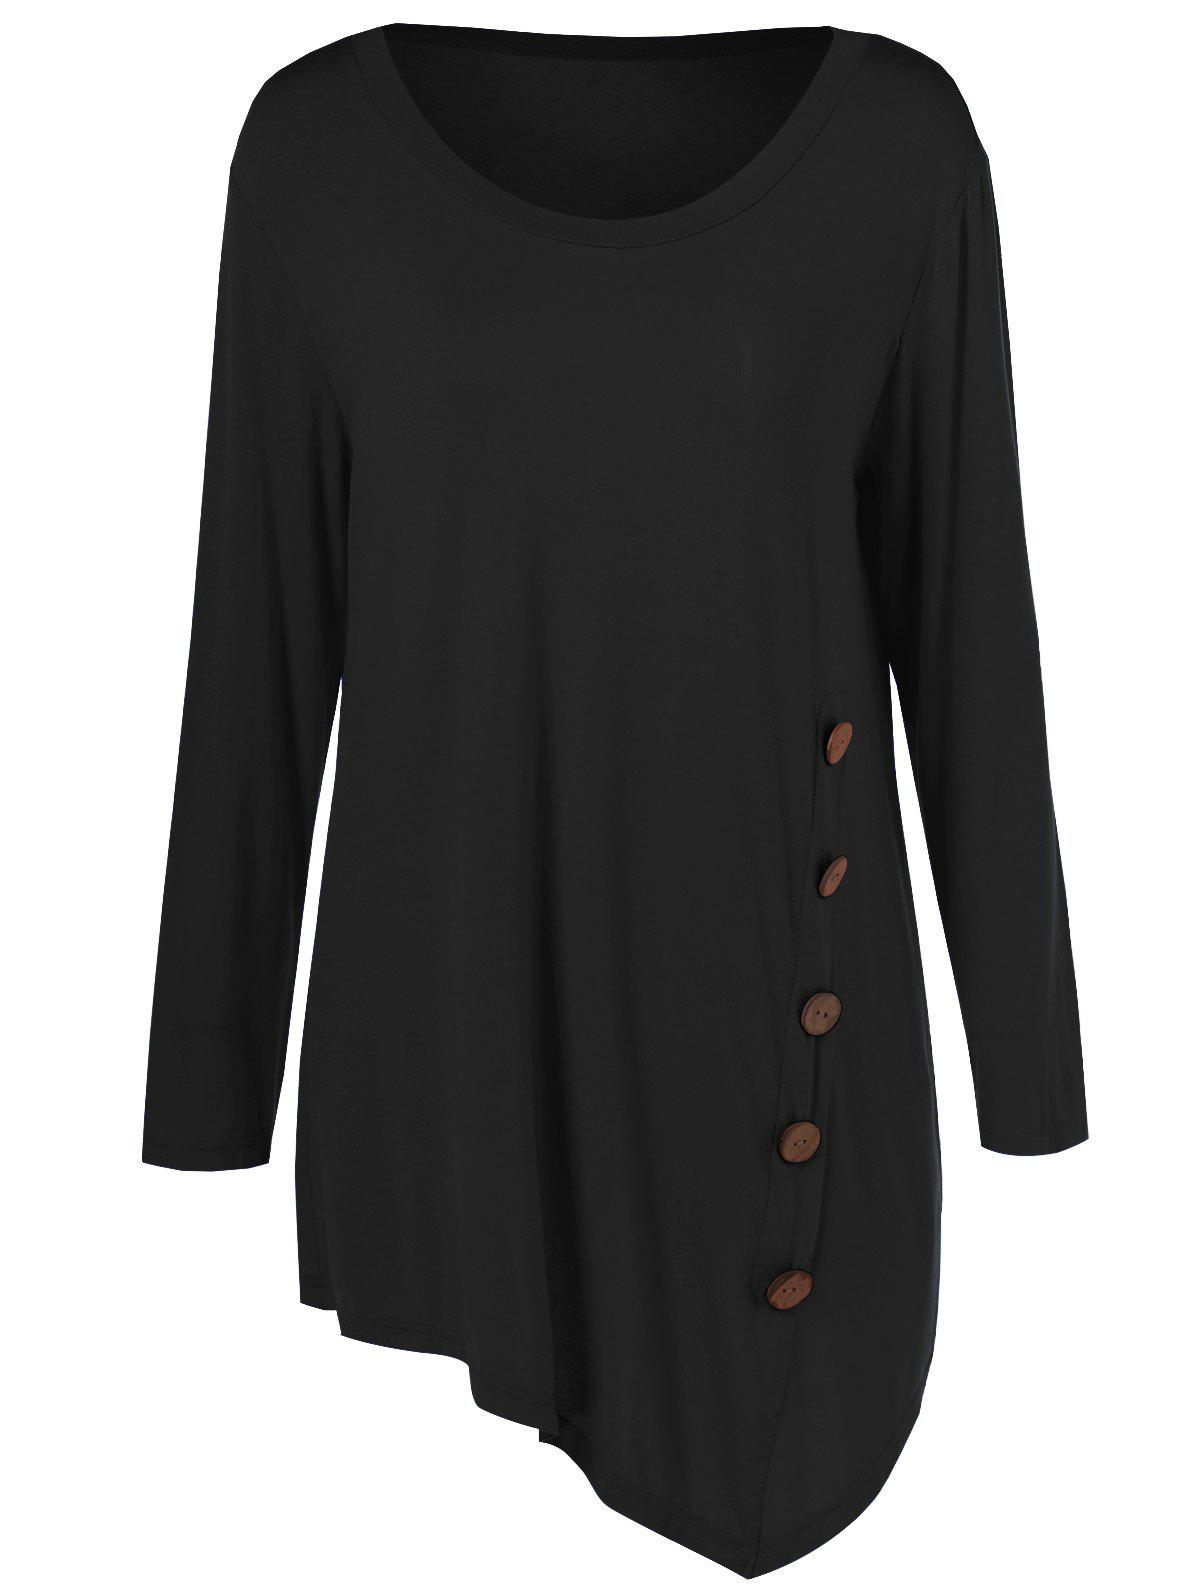 Plus Size Inclined Buttoned BlouseWOMEN<br><br>Size: 2XL; Color: BLACK; Material: Cotton Blends,Spandex; Shirt Length: Regular; Sleeve Length: Full; Collar: Scoop Neck; Style: Casual; Season: Fall,Spring,Summer; Pattern Type: Solid; Weight: 0.2520kg; Package Contents: 1 x Blouse;